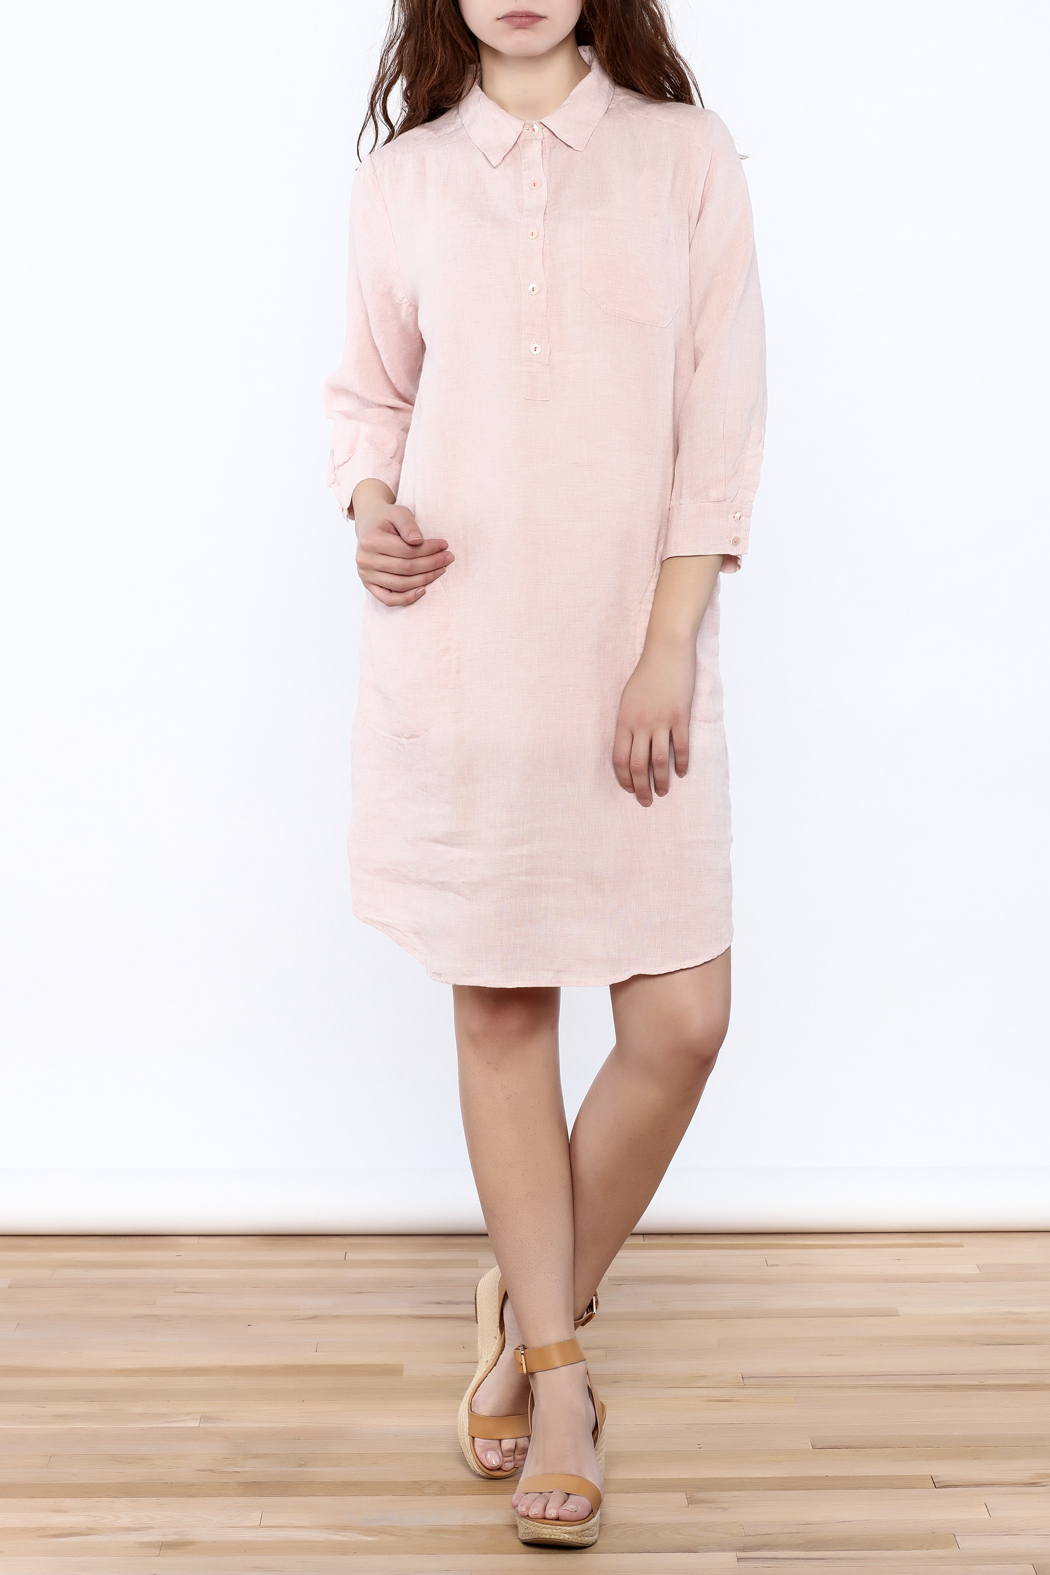 Studio 412 Ballet Pink Linen Dress - Front Full Image